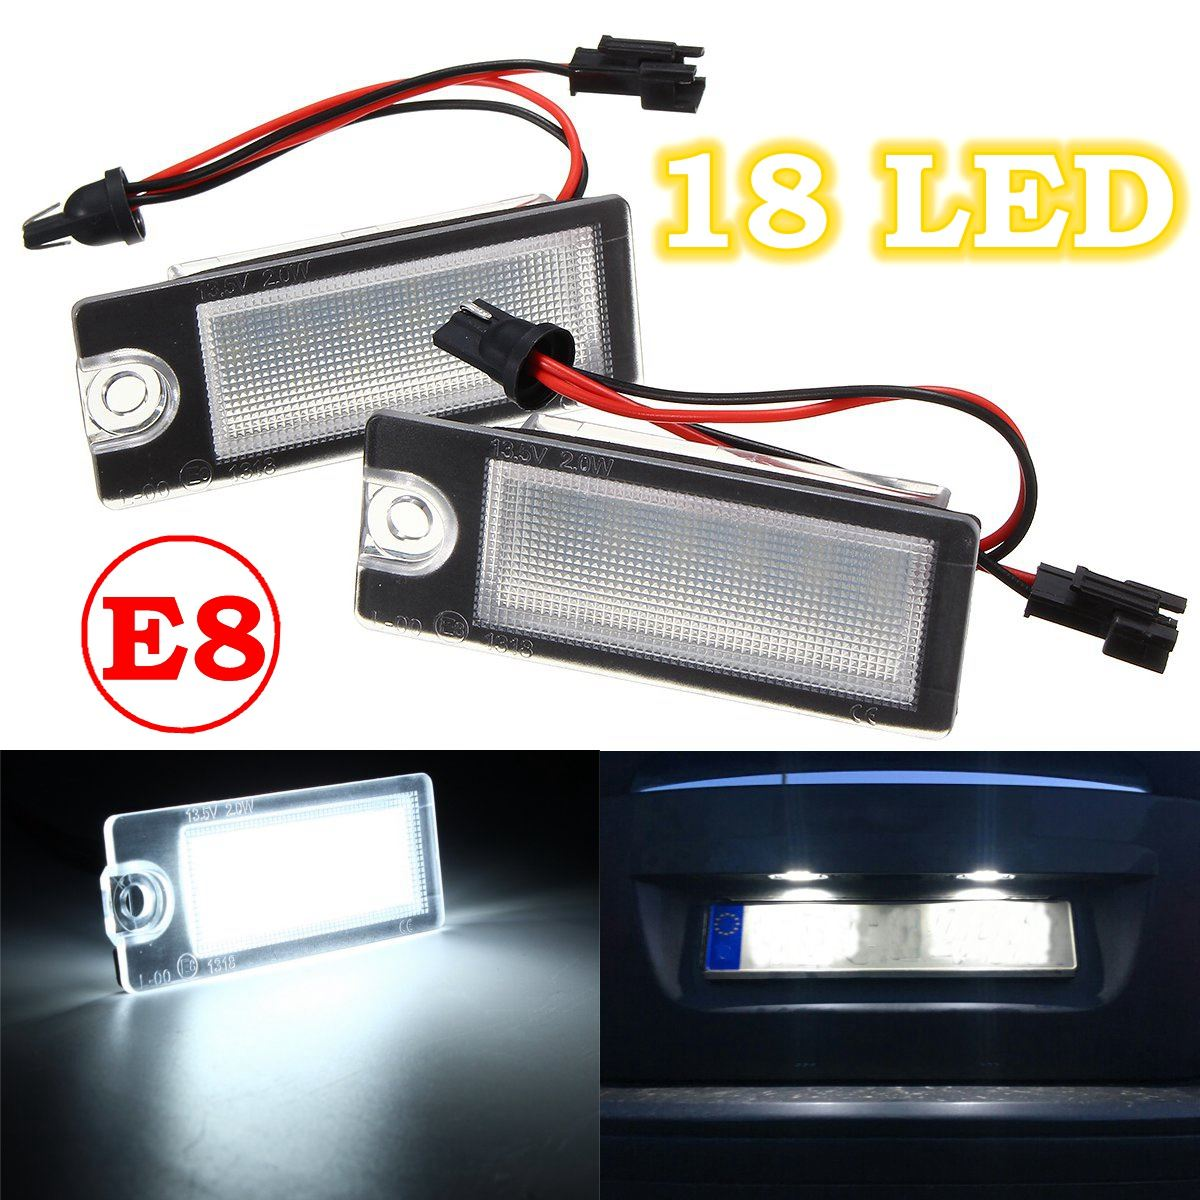 2Pcs Car 18 LED License Plate Light White Number Plate Lamp For Volvo S80 99-06 V70 XC70 S60 XC90 Accessories canbus 18 led license plate light car number plate lamp for seat altea arosa ibiza 97 08 cordoba 93 08 leon 99 05 toledo iii